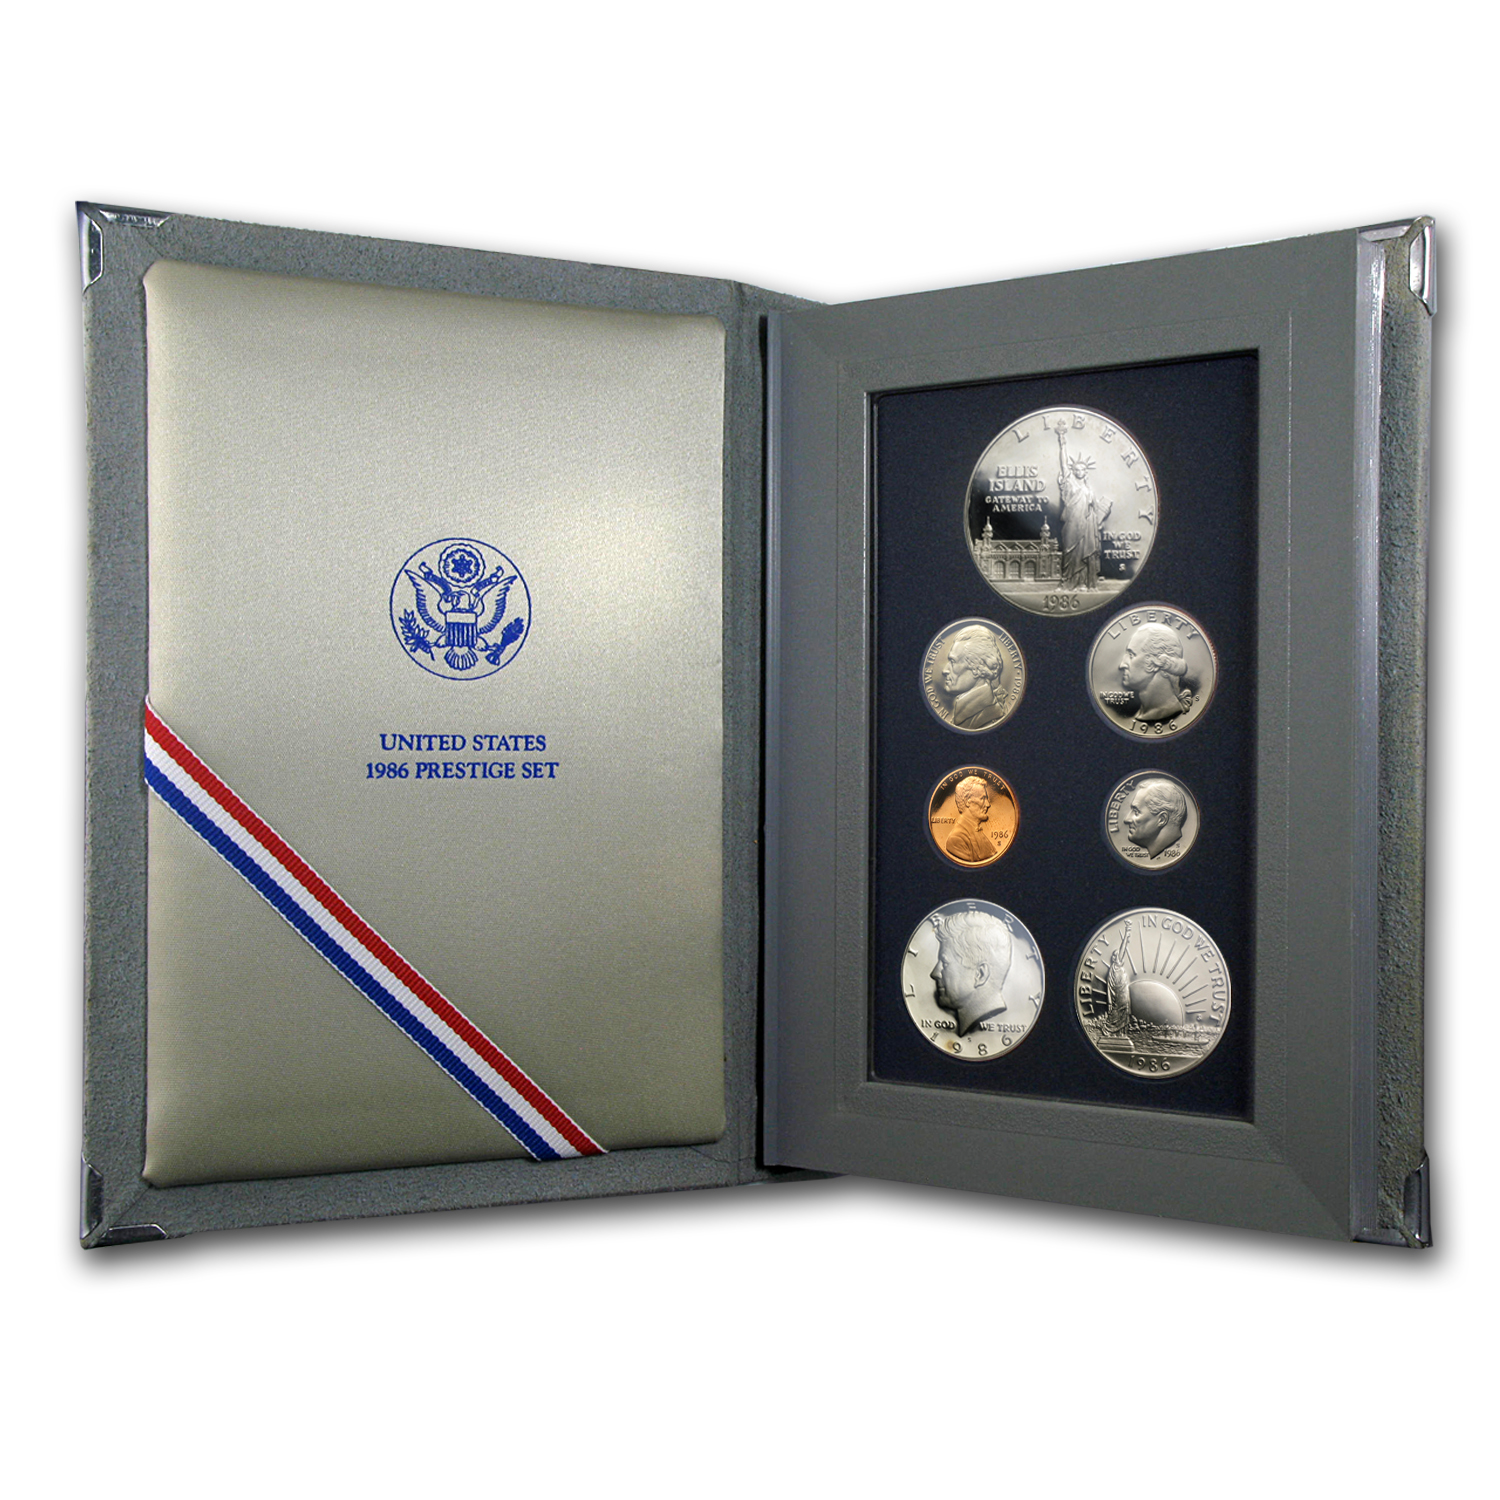 1986 U.S. Mint Prestige Set